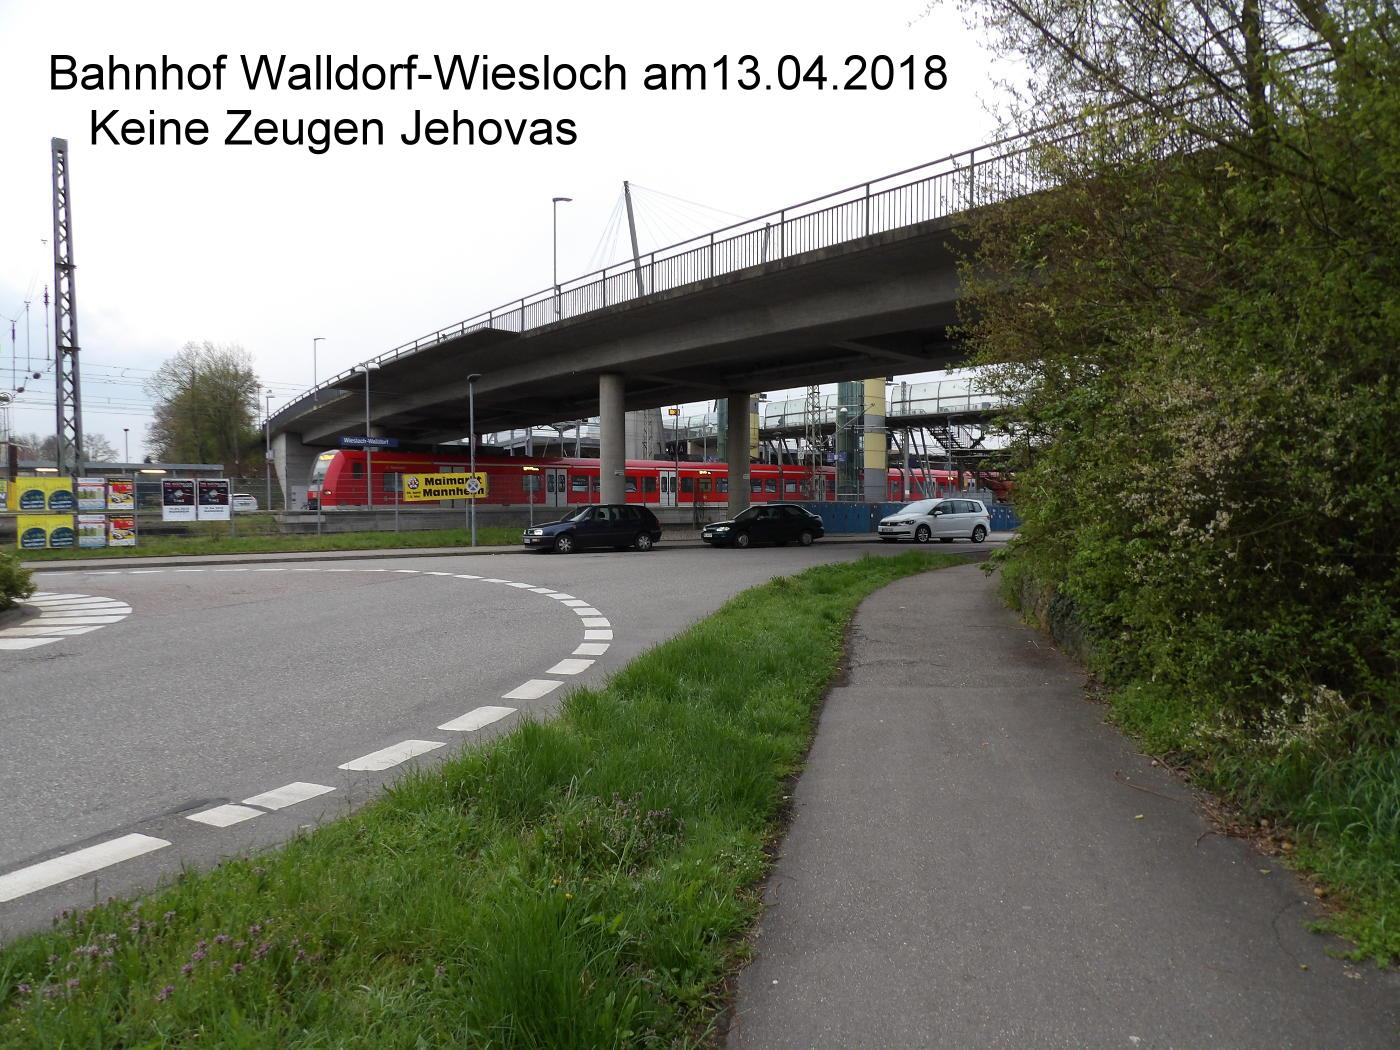 Jehovah's Witnesses have learned that they no longer have to show up at Walldorf-Wiesloch station on Fridays